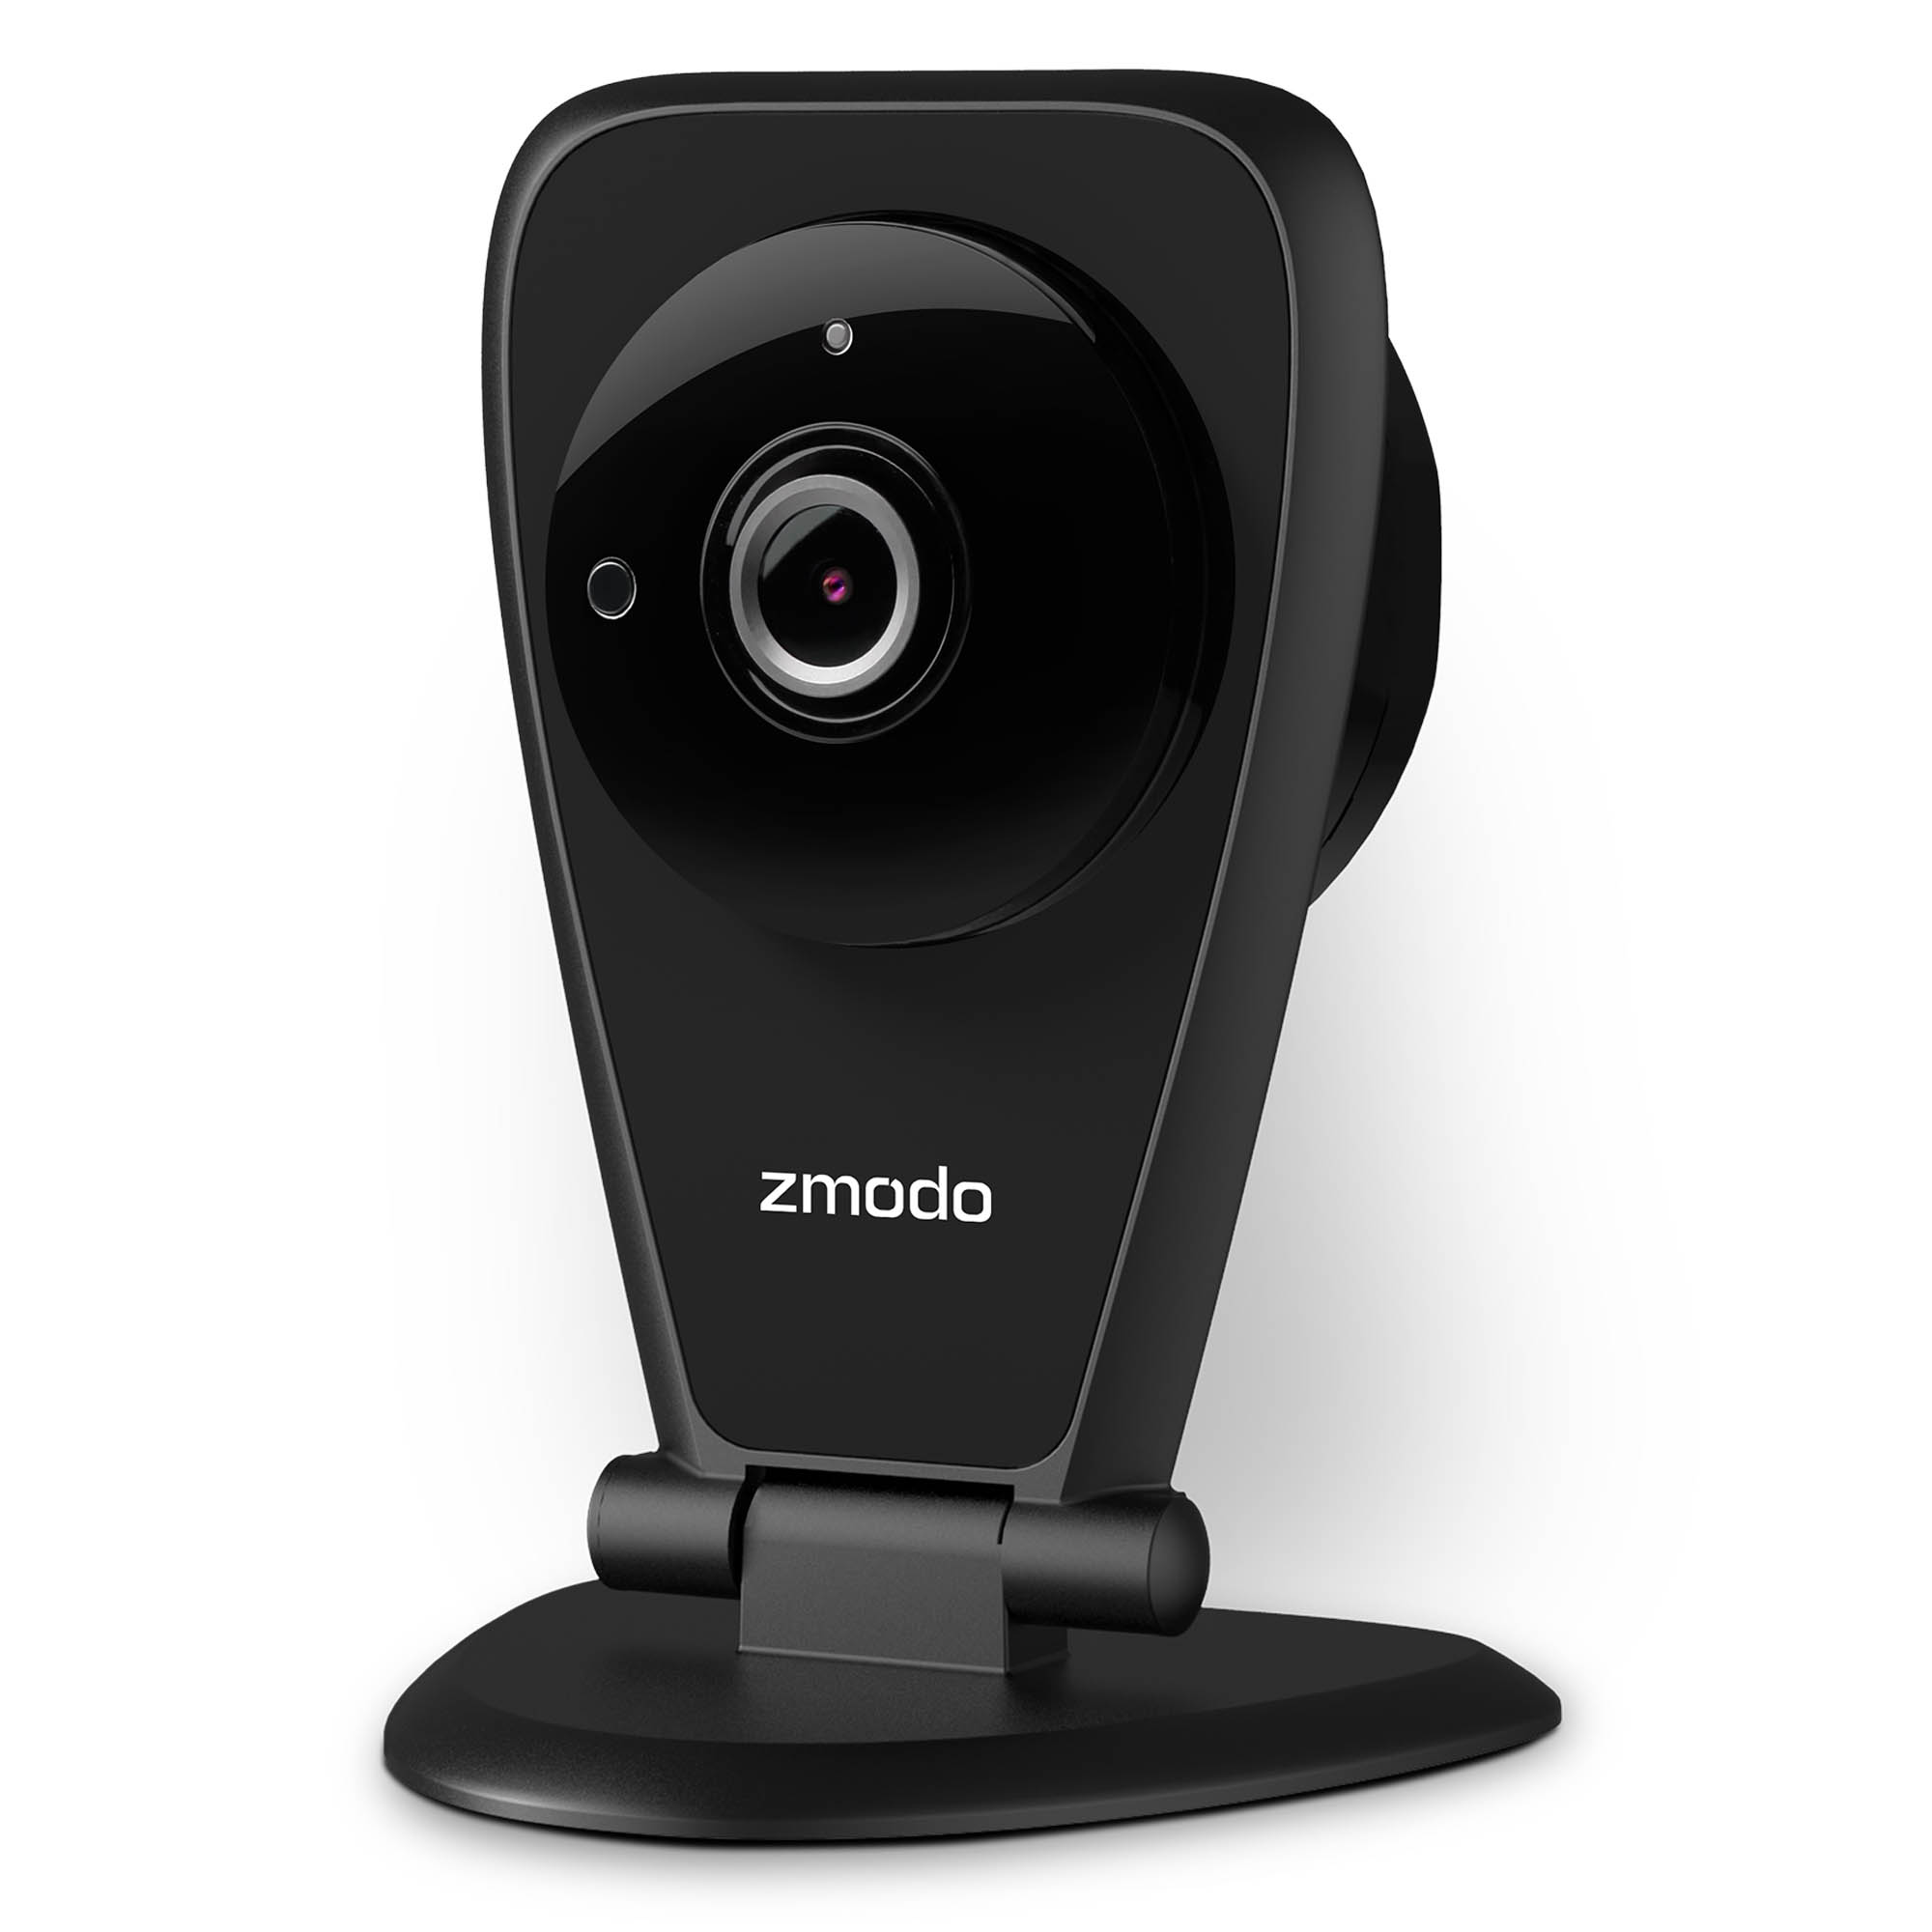 Zmodo EZCam Pro   1080p HD Wireless Kid And Pet Monitoring Security Camera  With Night Vision